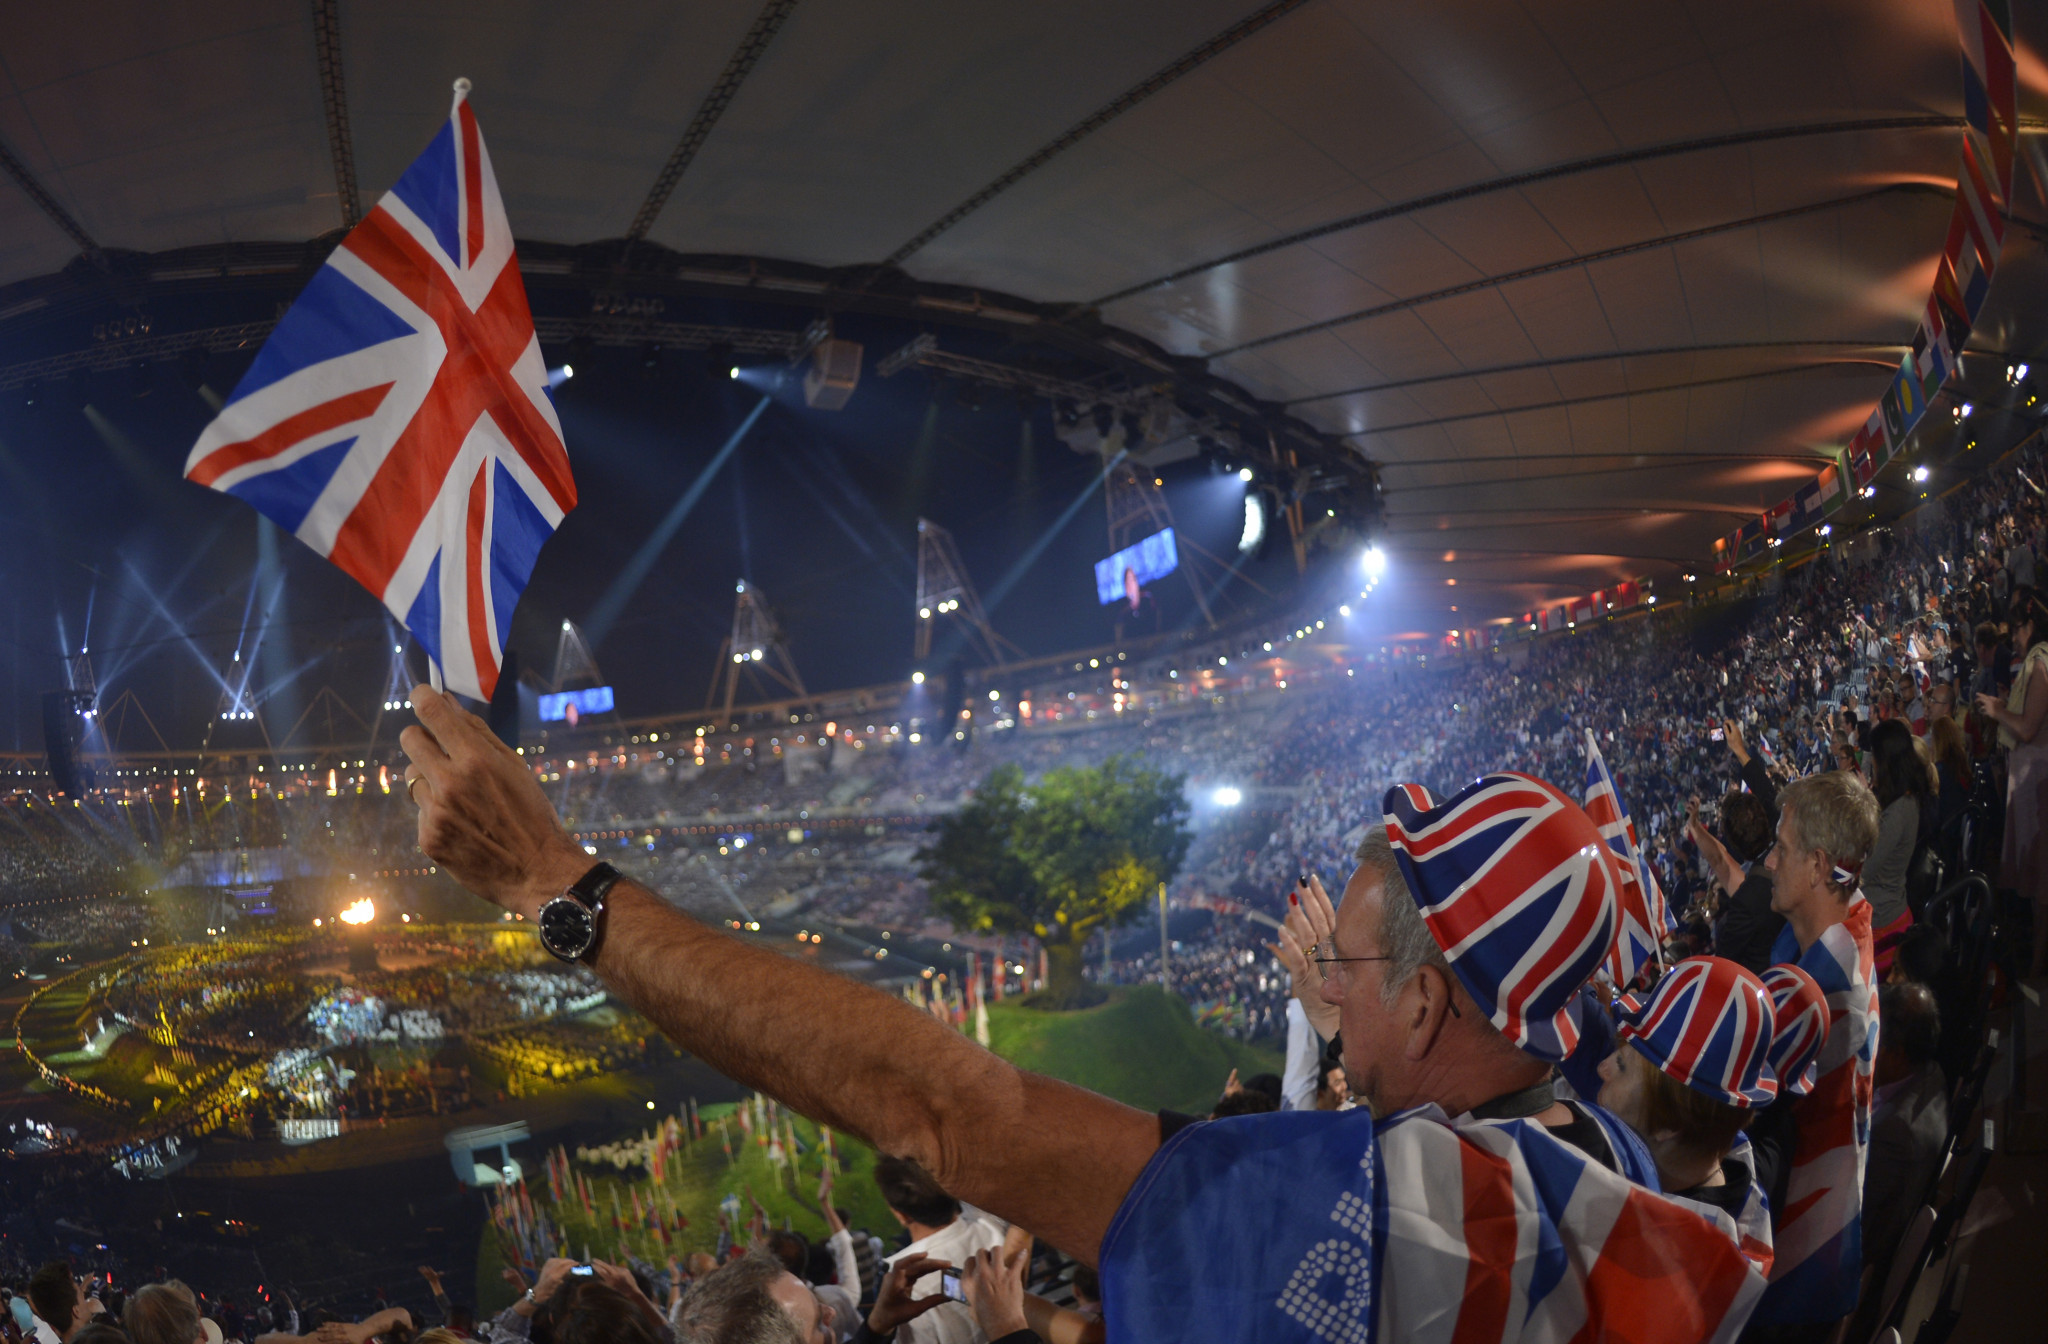 It was always going to be a tough ask for Rio 2016 and Sochi 2014 to compete with London 2012 and Vancouver 2010 in terms of ticketing ©Getty Images